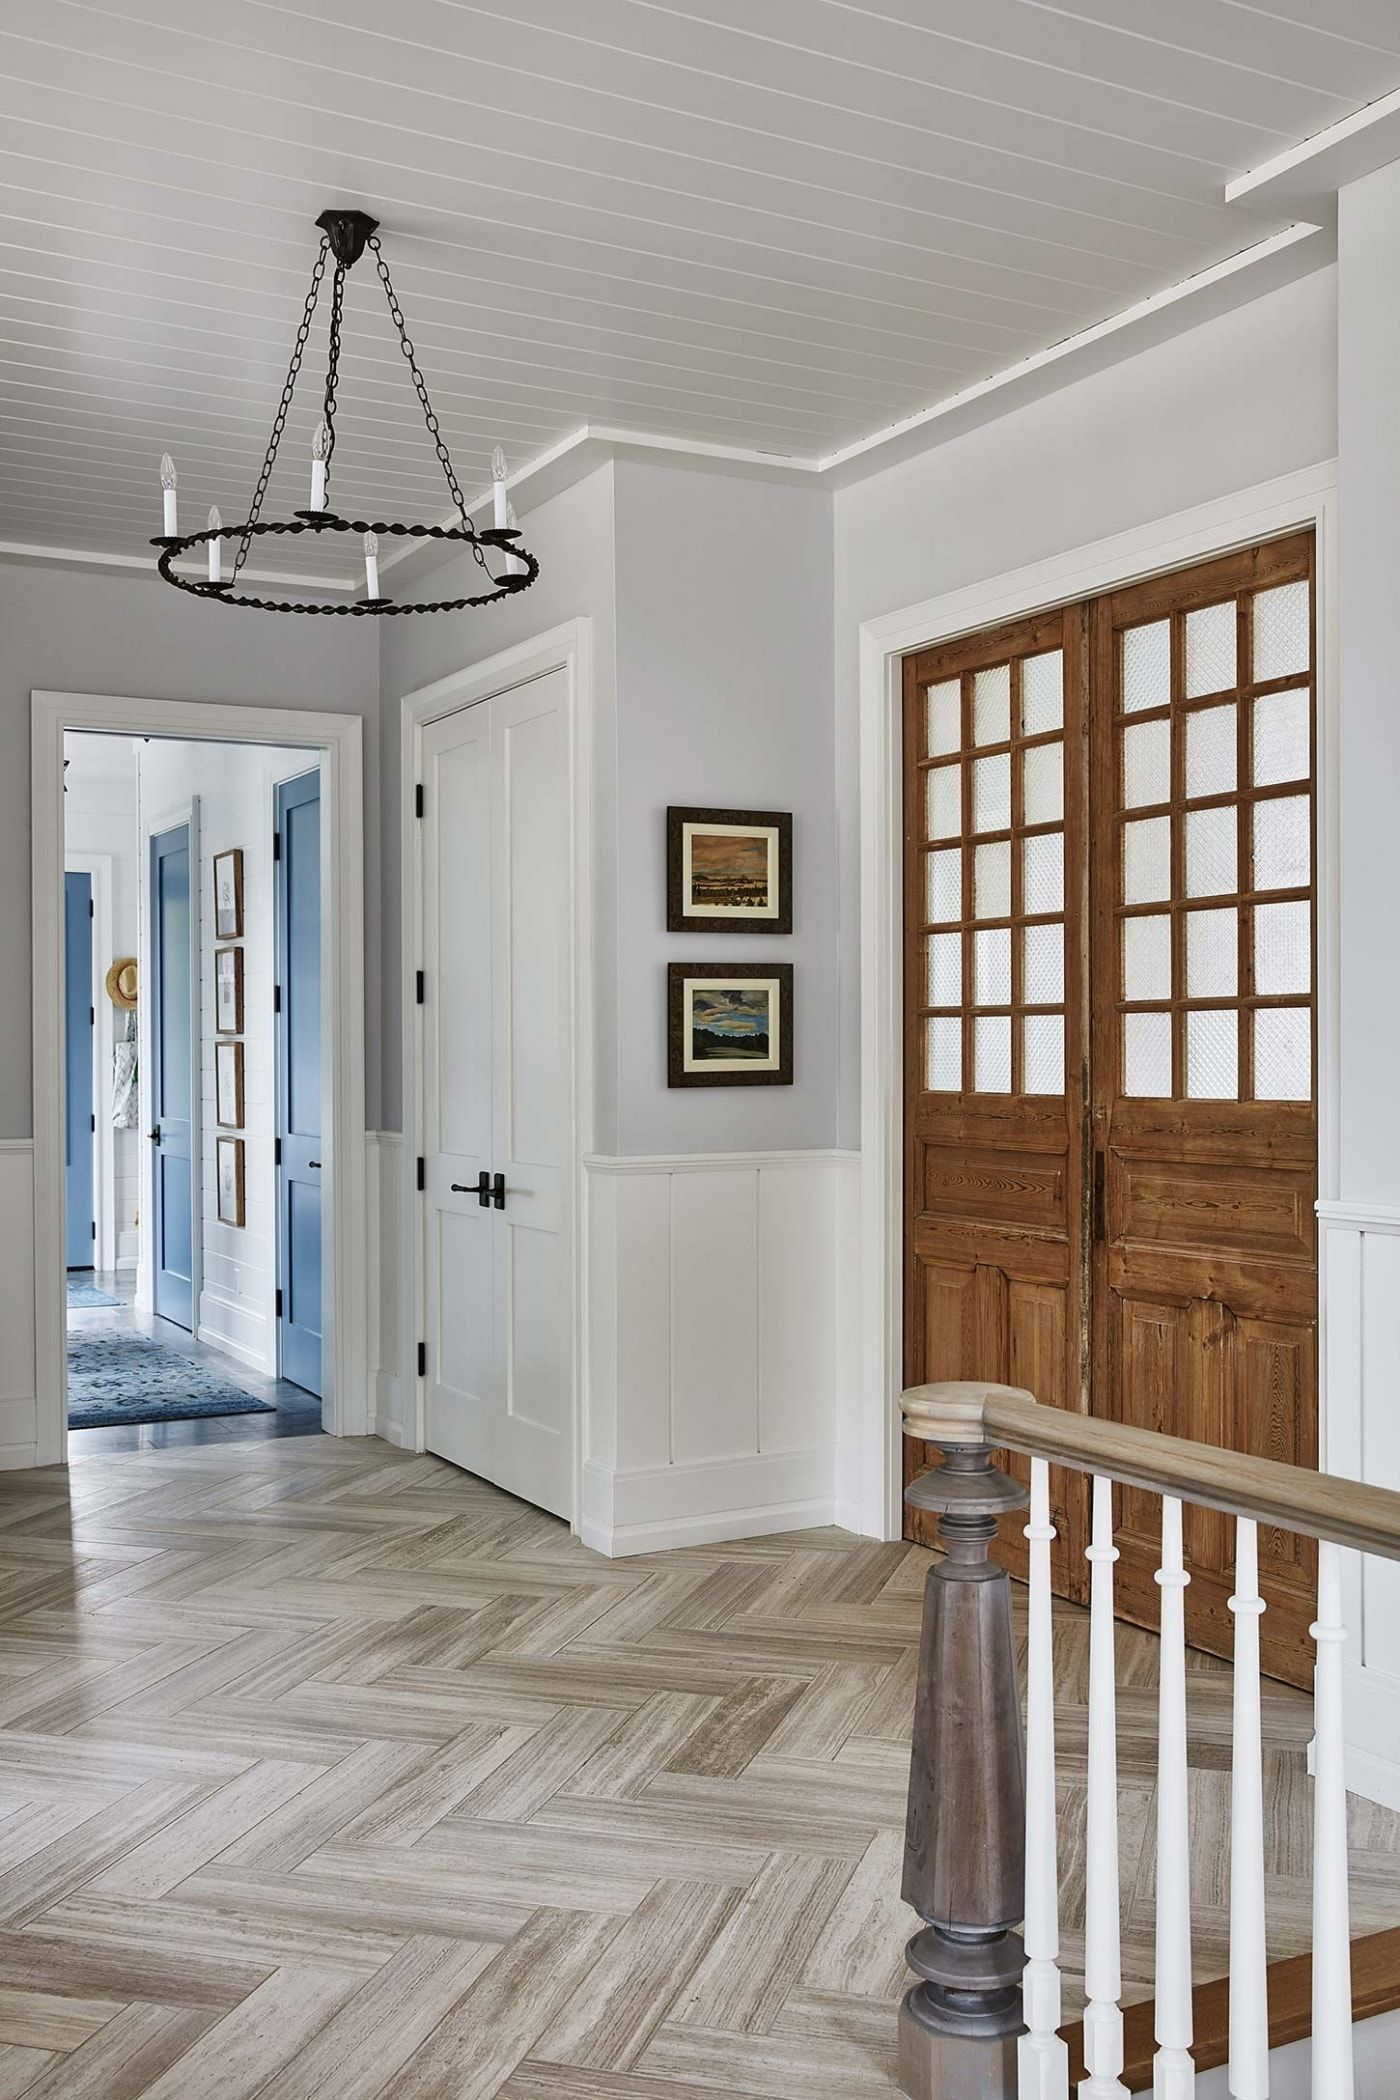 Residential Interior Project Has Modern Yet Vintage Take: Get The Look! Sarah Richardson Off The Grid House {Foyer